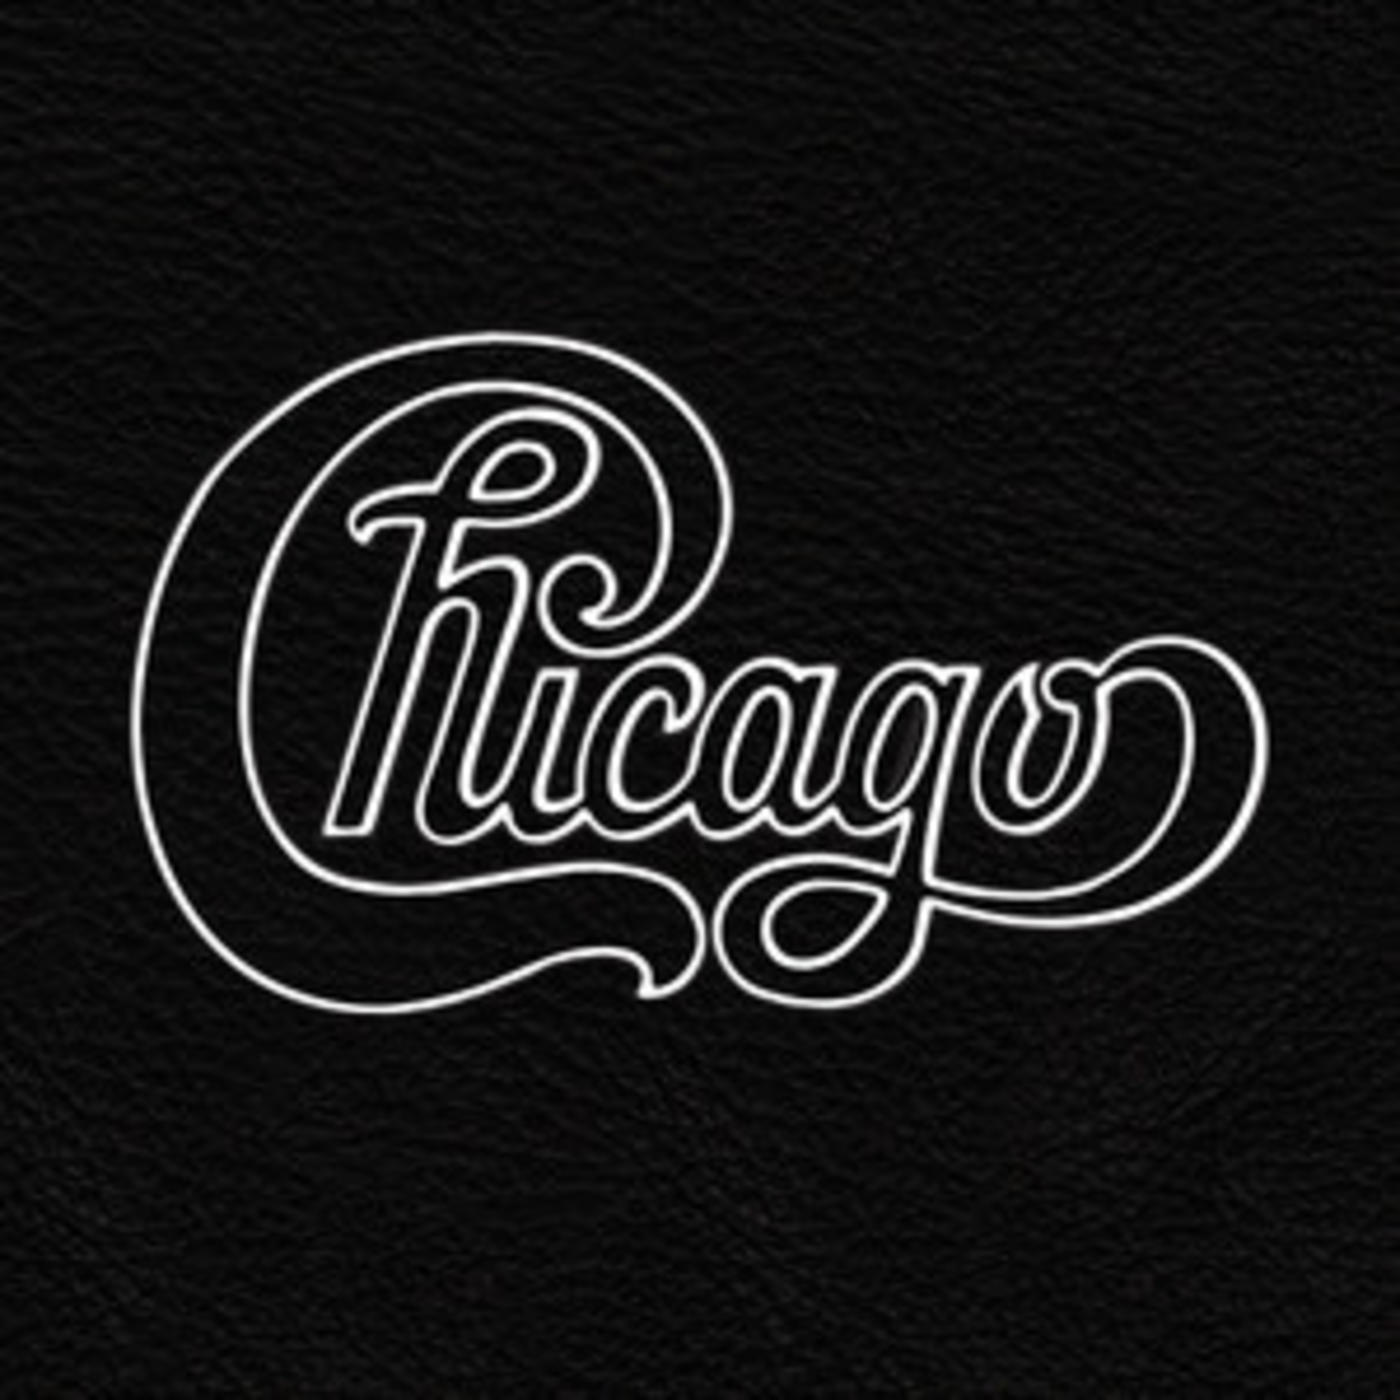 Official Chicago Playlist - If You Leave Me Now, Hard To Say I'm Sorry, 25 or 6 to 4, Look Away